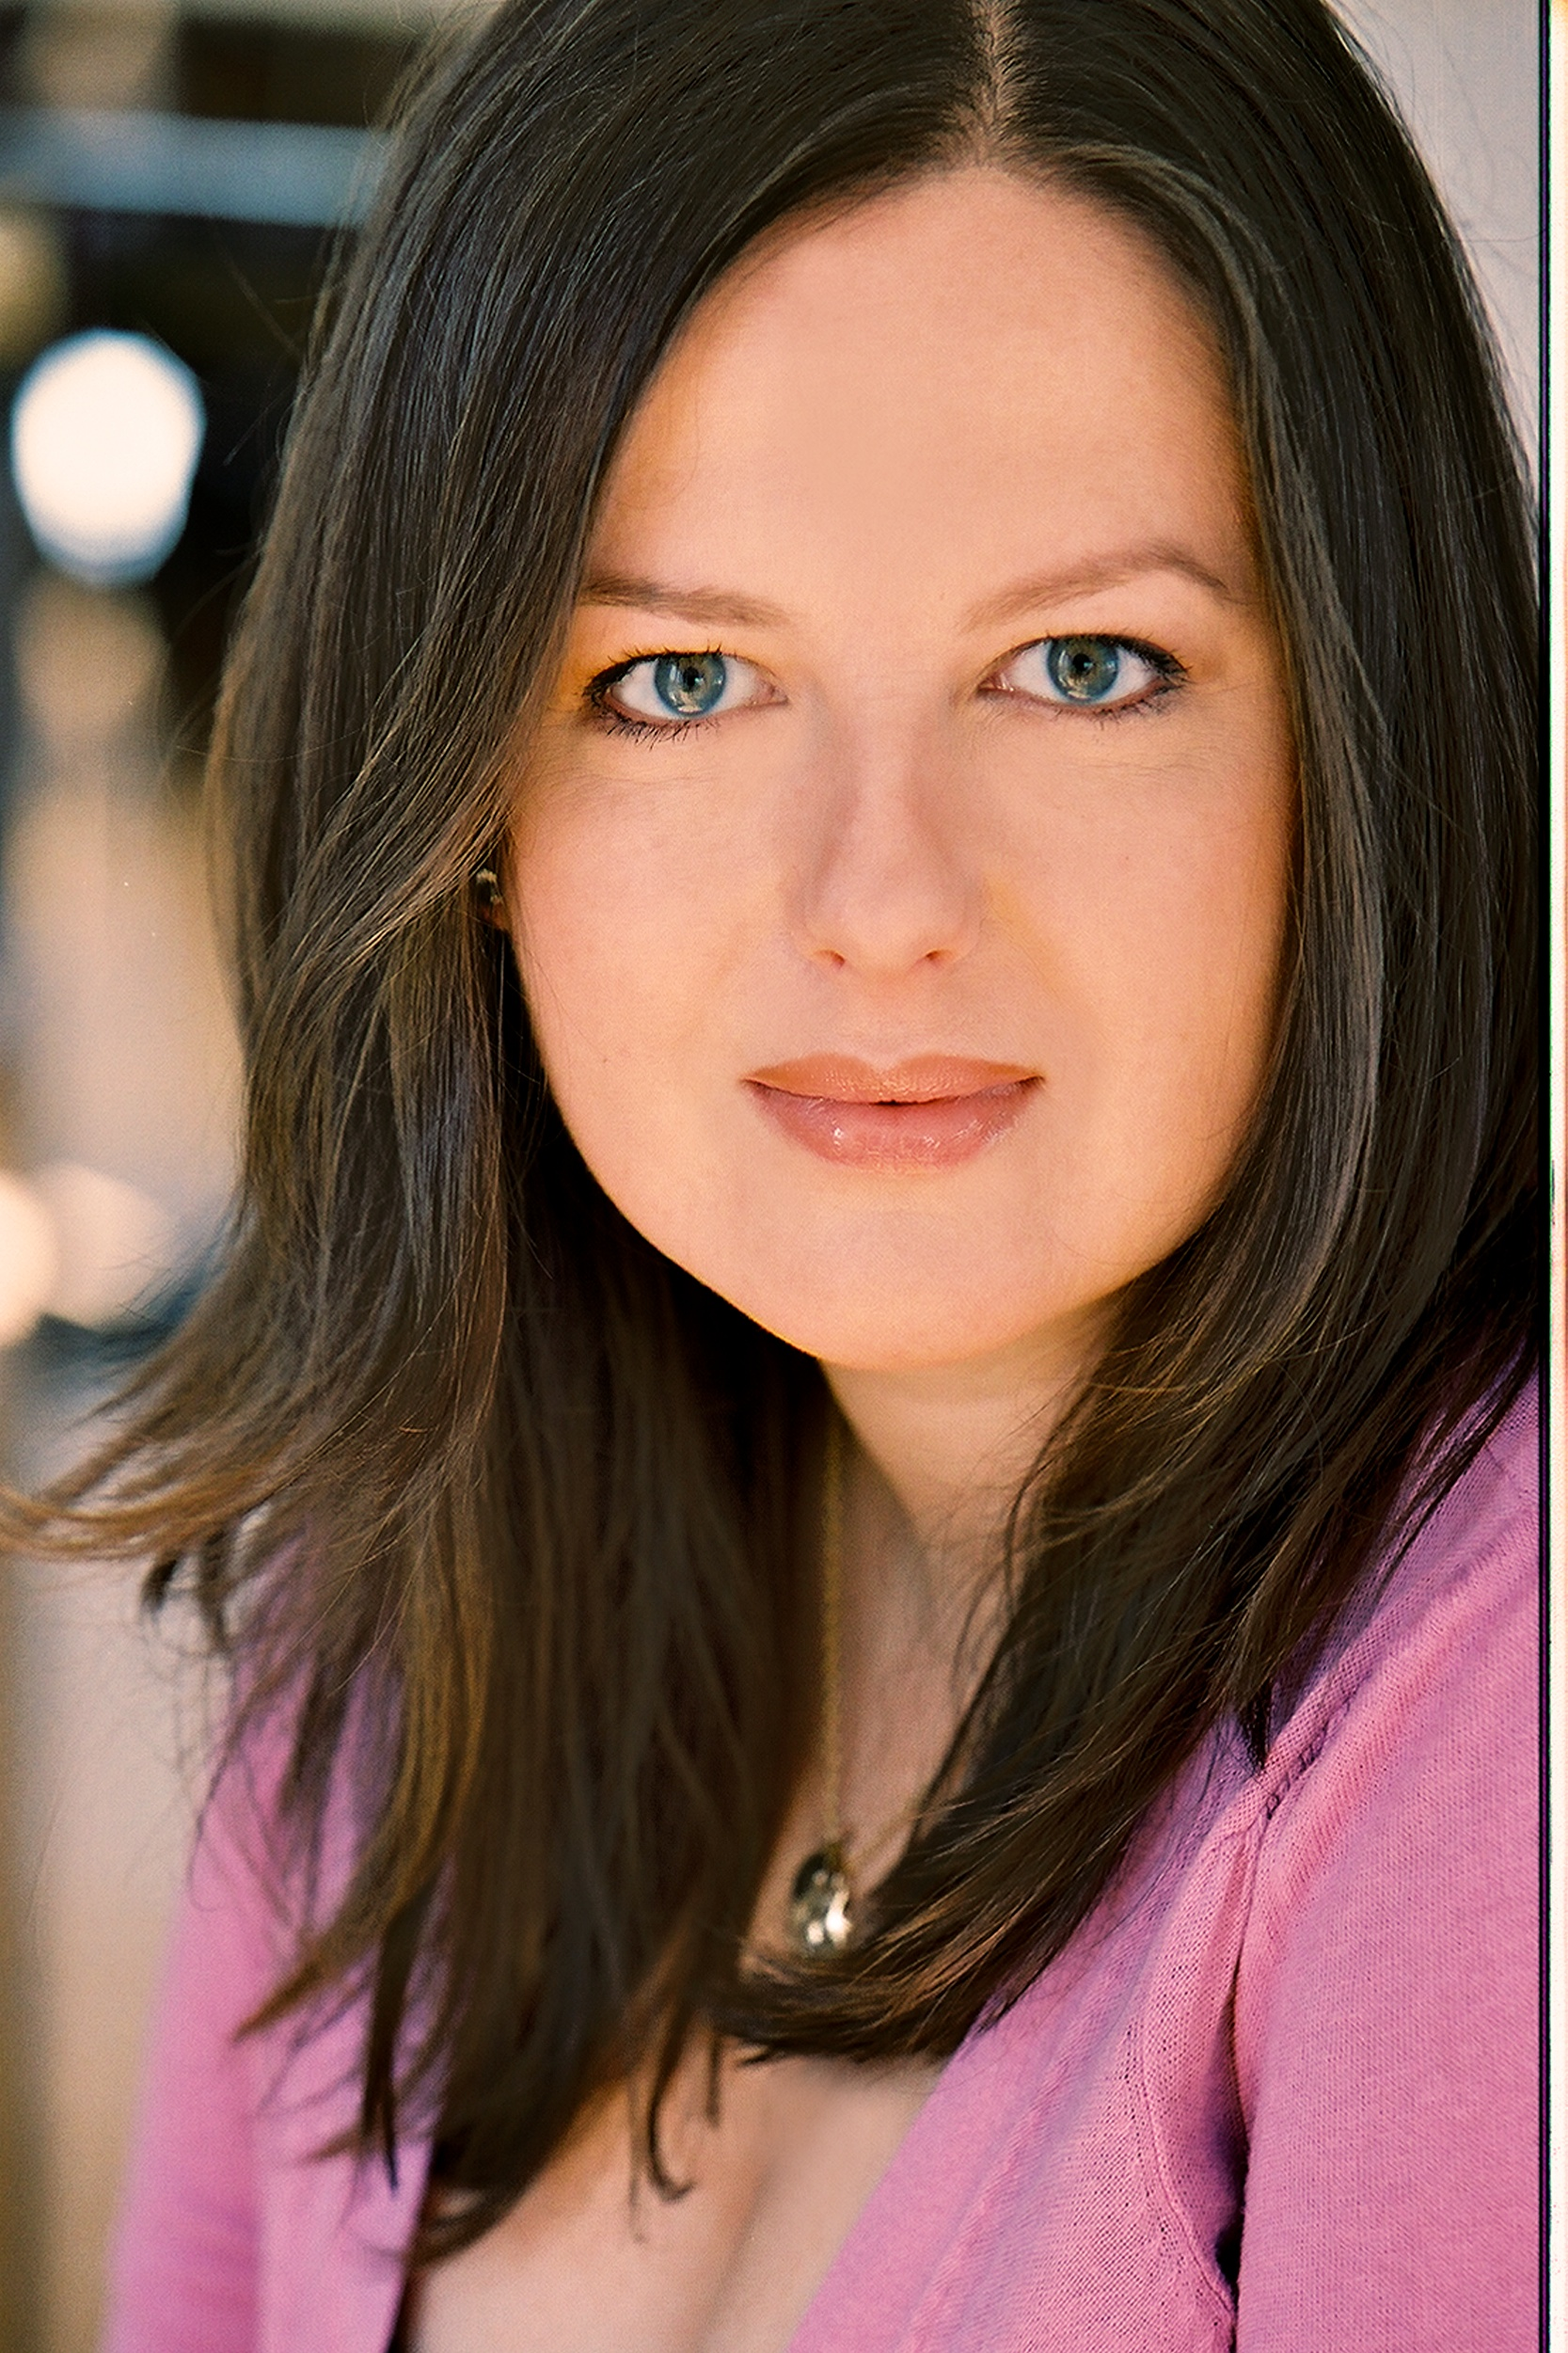 """ZUZANNA SZADK  OWSKI (Yulya, Lady Grooming  ) : Zuzanna Szadkowski played """"Dorota"""" in the CW's hit drama series Gossip Girl and was voted #7 in Rolling Stone's """"50 Reasons to Watch TV."""" Currently she can be seen as """"Nurse Pell"""" on the Cinemax series from Steven Soderbergh,The Knick.She appeared on the fourth season of HBO's GIRLS as """"Priya"""". Other television credits include Elementary,Guiding Light,The Sopranos,Law and Order,and Law and Order: Criminal Intent. Film credits include Growing up and Other Lies, Loserville and Butterflies of Bill Baker. Theater credits include The Comedy of Errors as part of the Public Theater's Mobile Shakespeare Unit, Nora and Delia Ephron's  Love, Loss and What I Wore Off Broadway and on tour,Olly's Prison at A.R.T. directed by Robert Woodruff,Benno Blimpie at A.R.T. Institute, and Spring Awakening in Moscow. She received a B.A. from Barnard College and an M.F.A. in acting from the A.R.T./MXAT Institute at Harvard."""